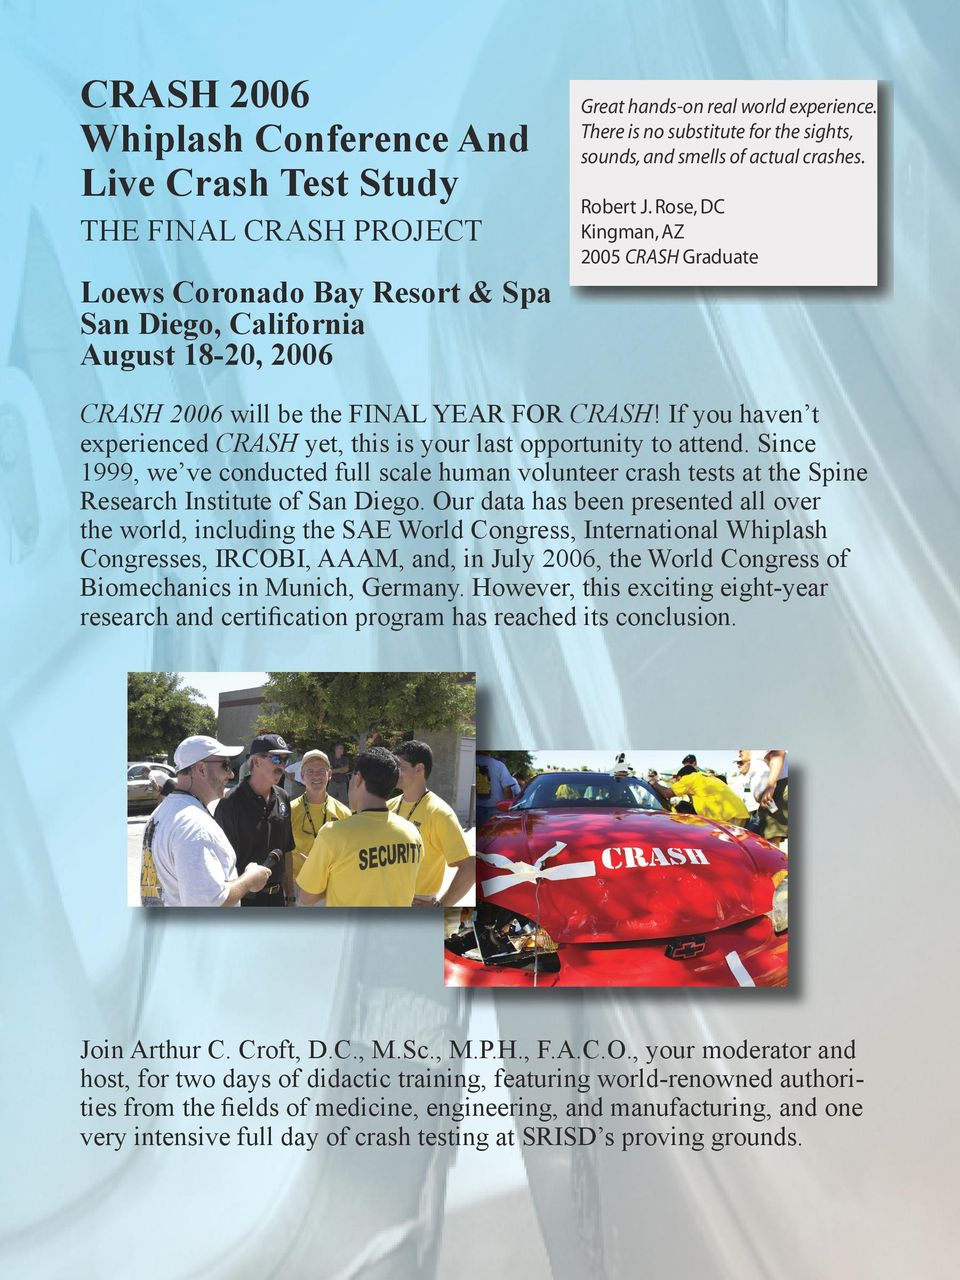 If you haven t experienced CRASH yet, this is your last opportunity to attend. Since 1999, we ve conducted full scale human volunteer crash tests at the Spine Research Institute of San Diego.